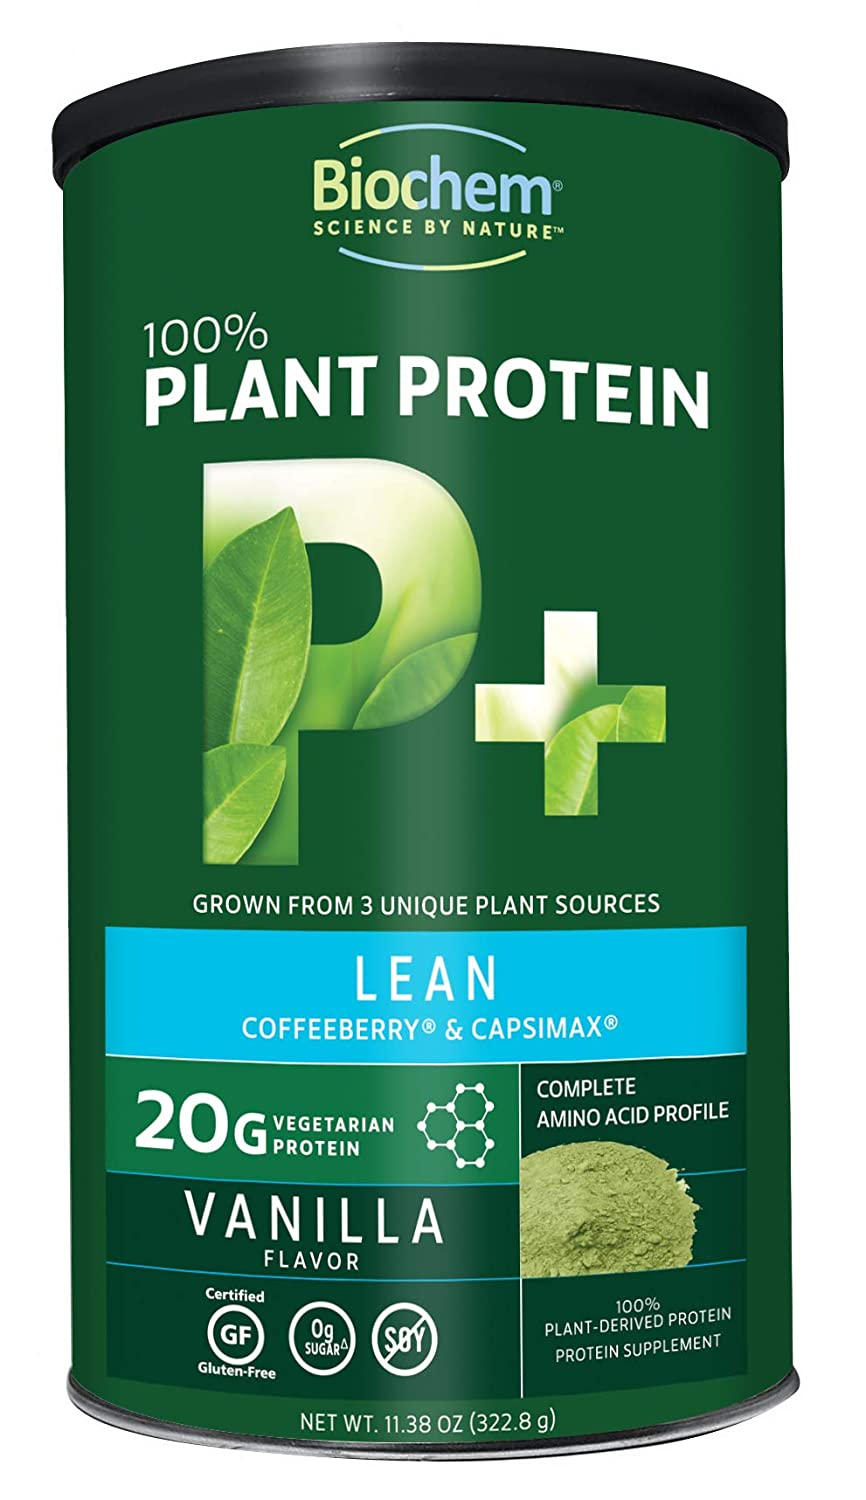 Biochem 100 Plant Protein – Lean – Vanilla Flavor – 11.38 Ounce – 20g Vegetarian Protein – Complete Amino Acid Profile – Keto-Friendly – Coffeeberry – Capsimax – Nutrient Rich